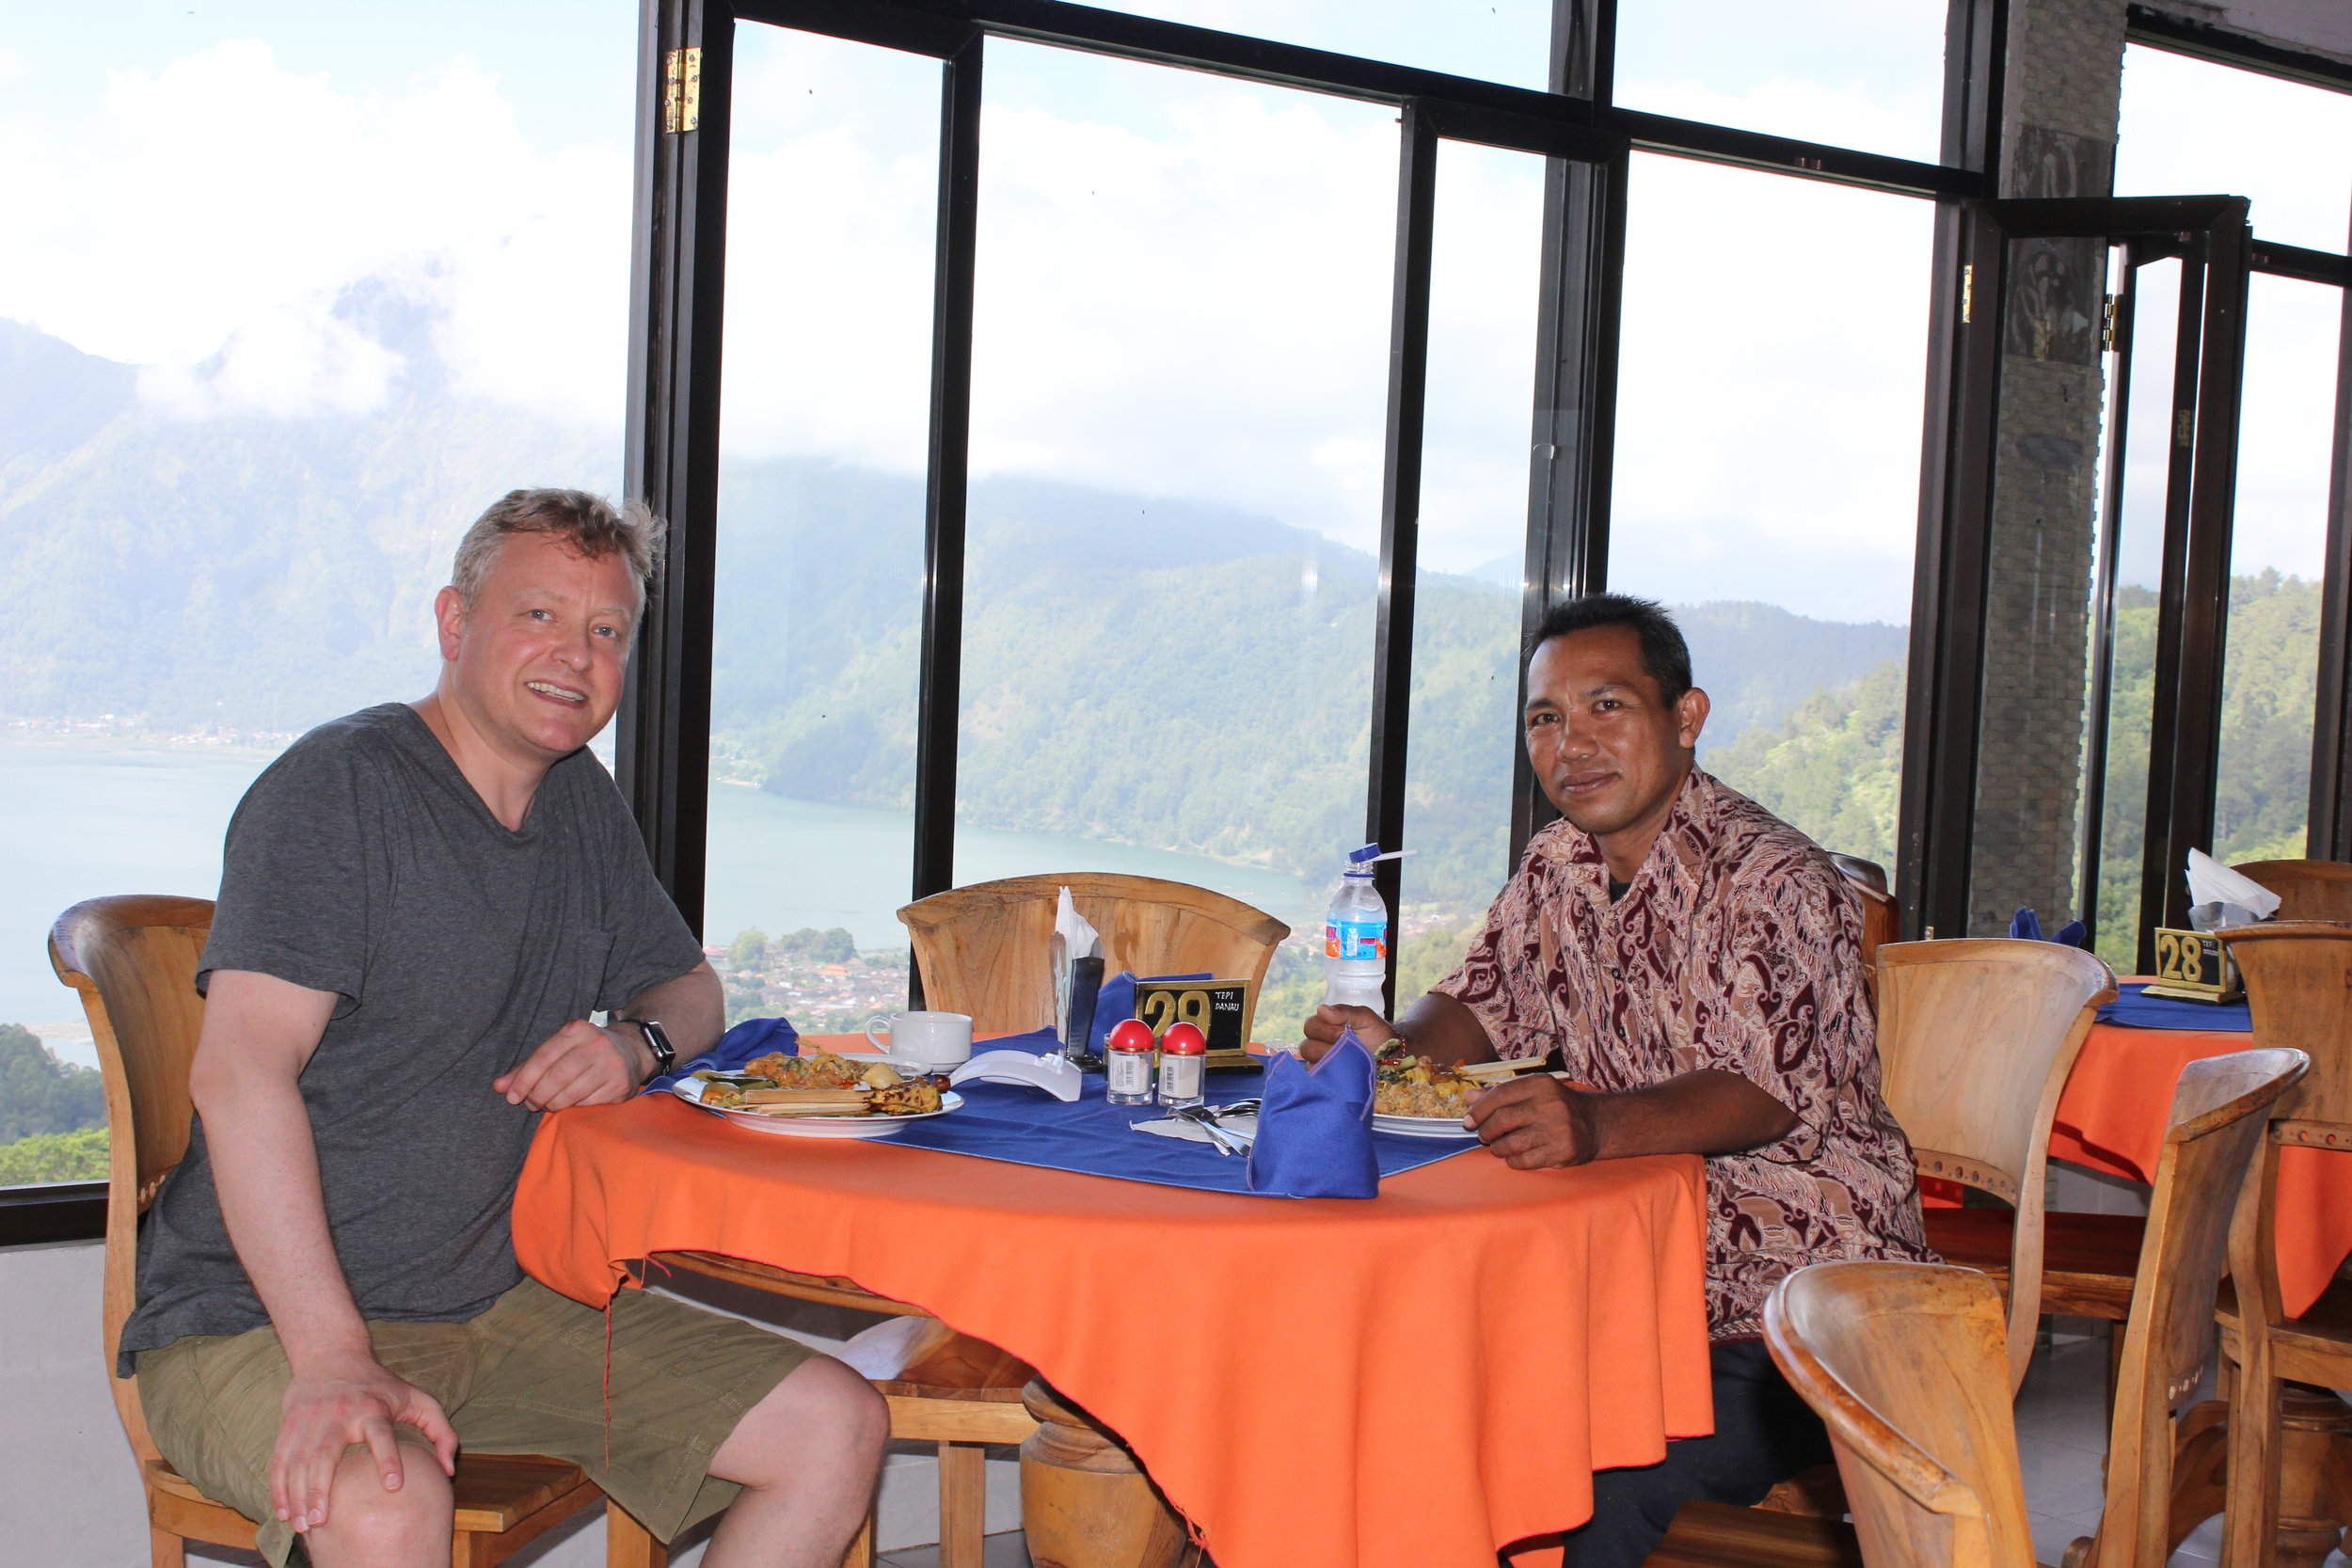 Me and my guide Sudirma at a restaurant overlooking Batur Lake